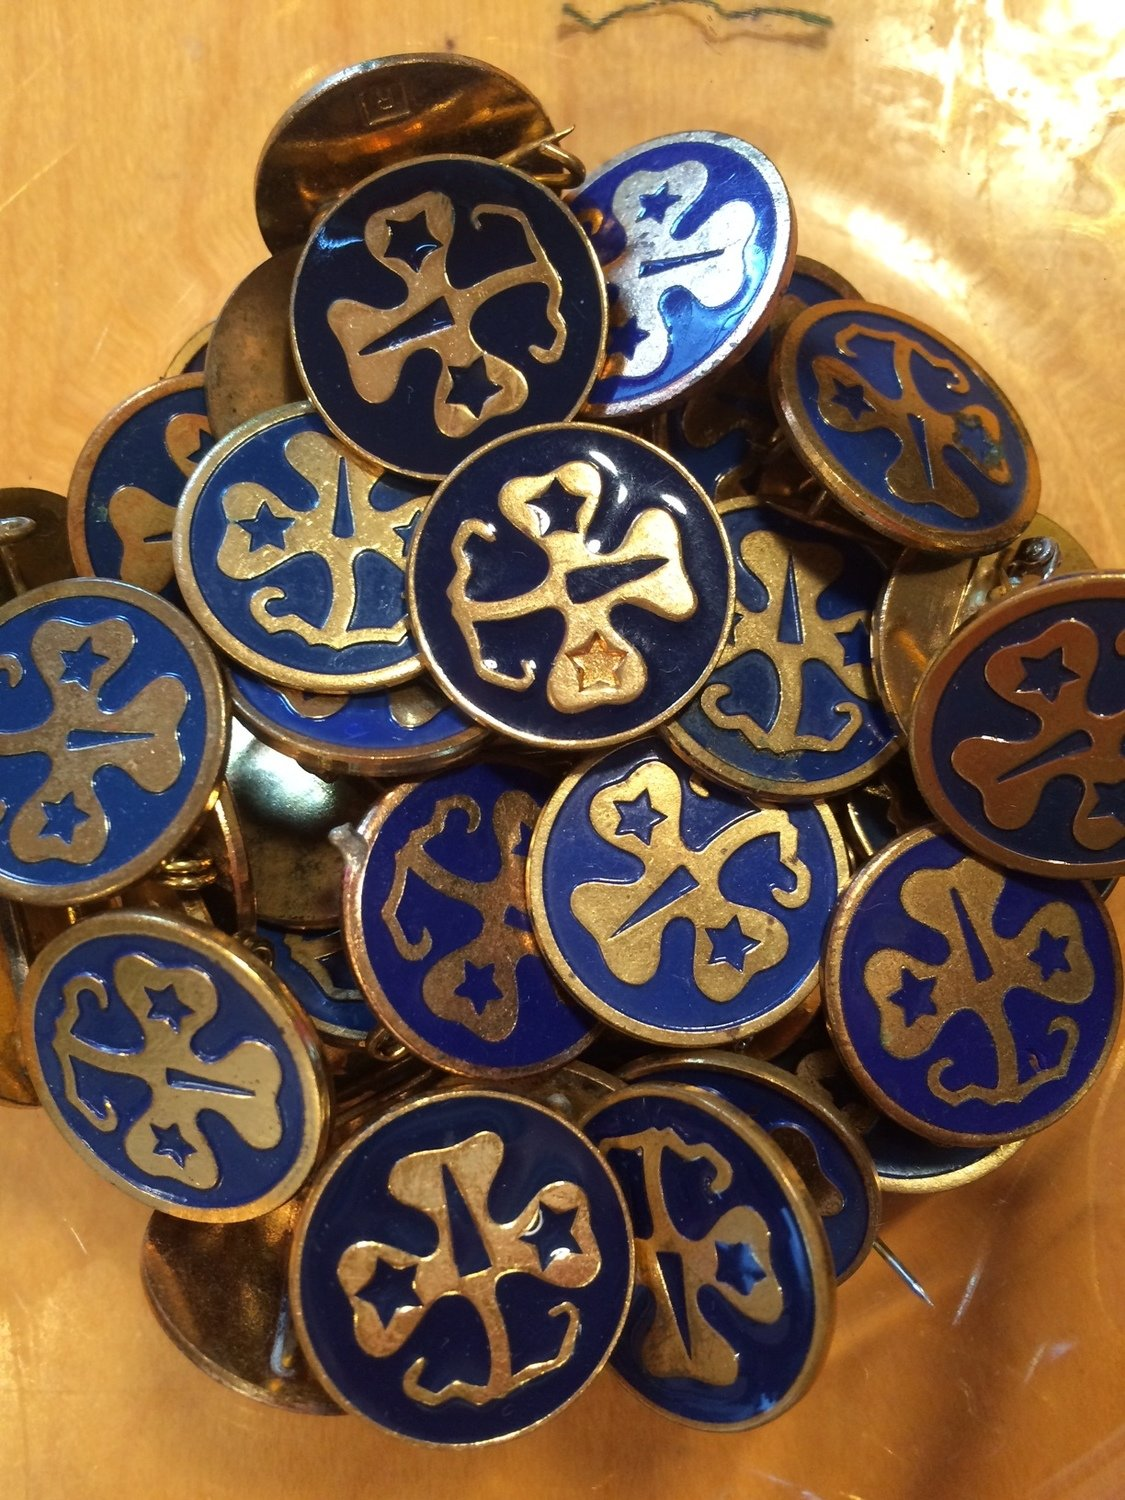 Vintage WAGGGS pins